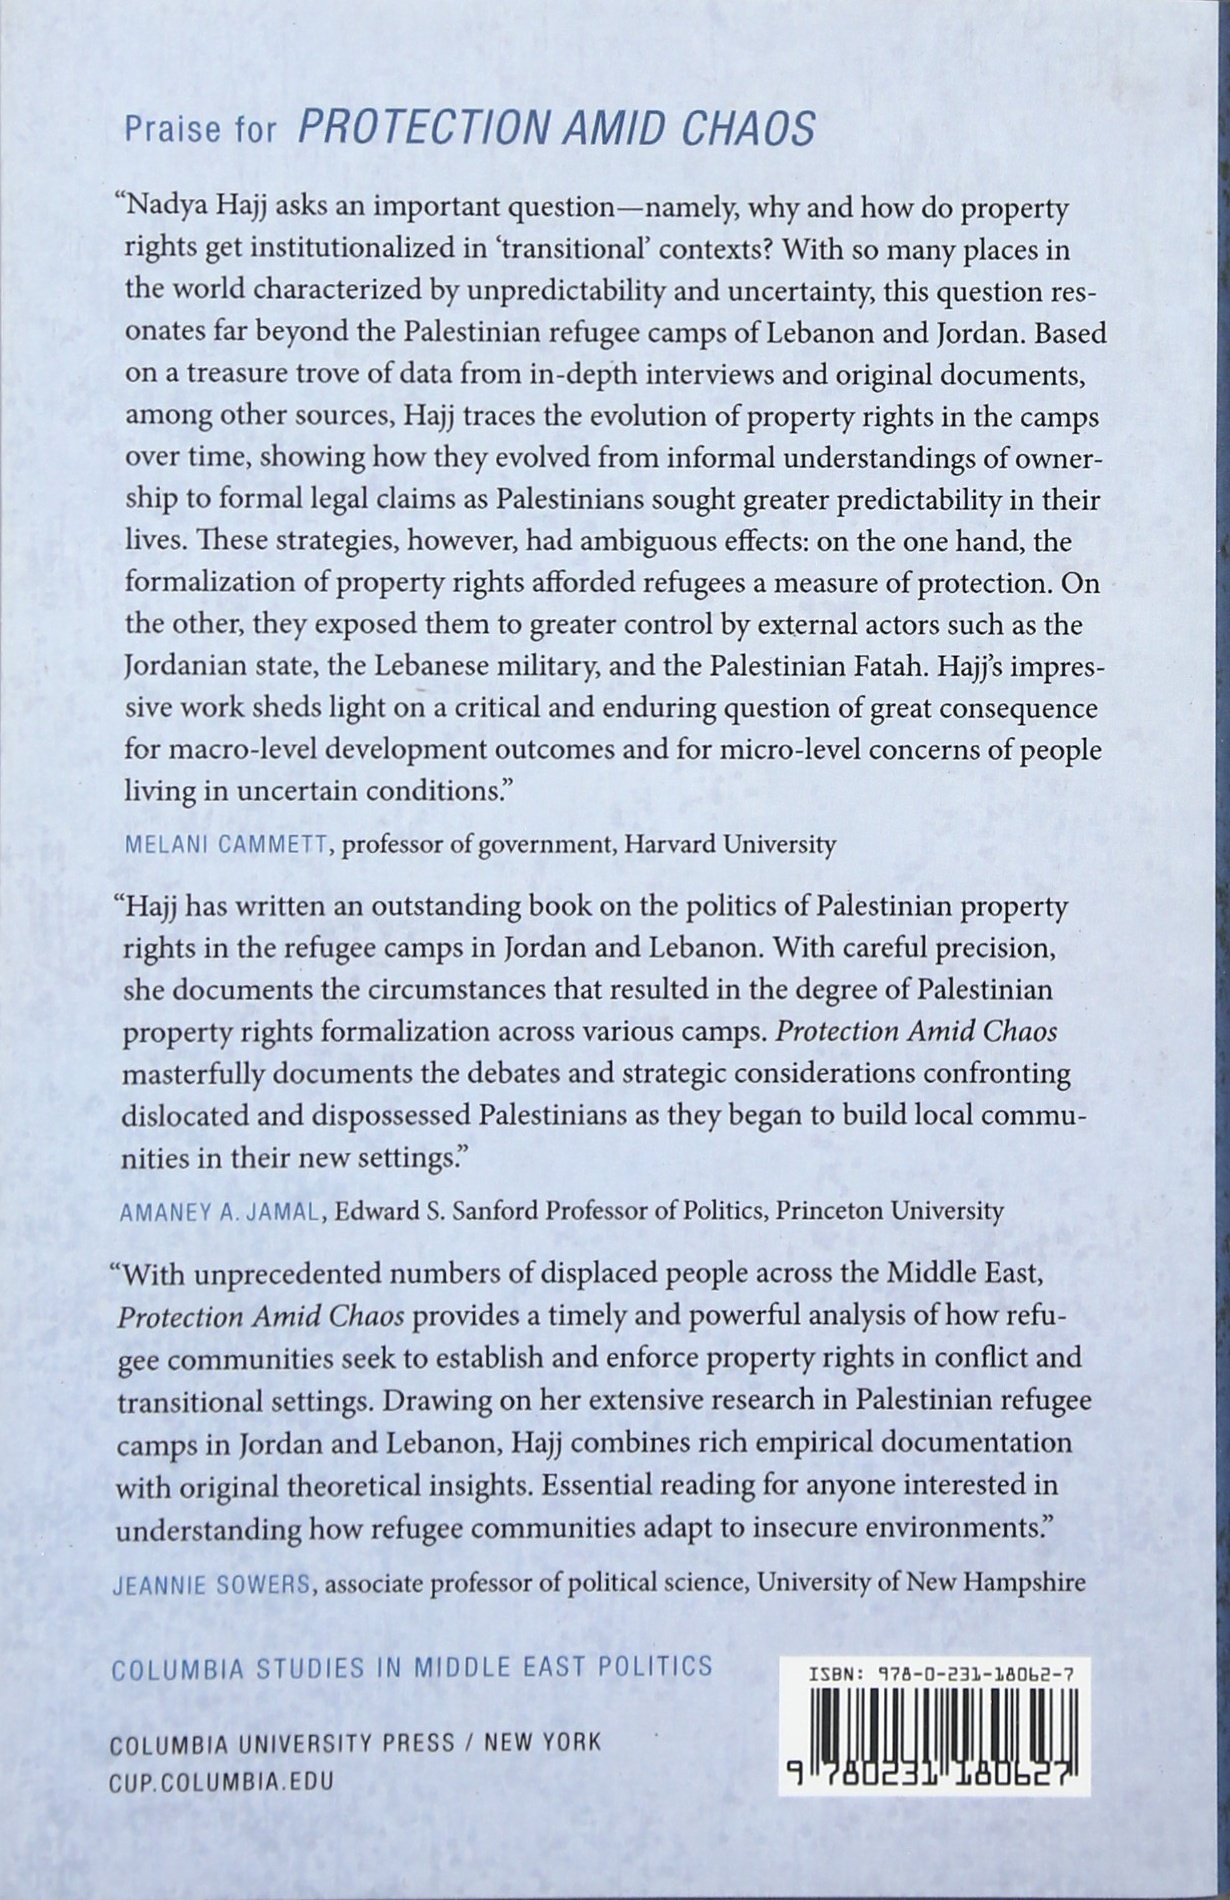 Protection Amid Chaos: The Creation Of Property Rights In Palestinian  Refugee Camps (columbia Studies In Middle East Politics): Nadya Hajj:  9780231180627: